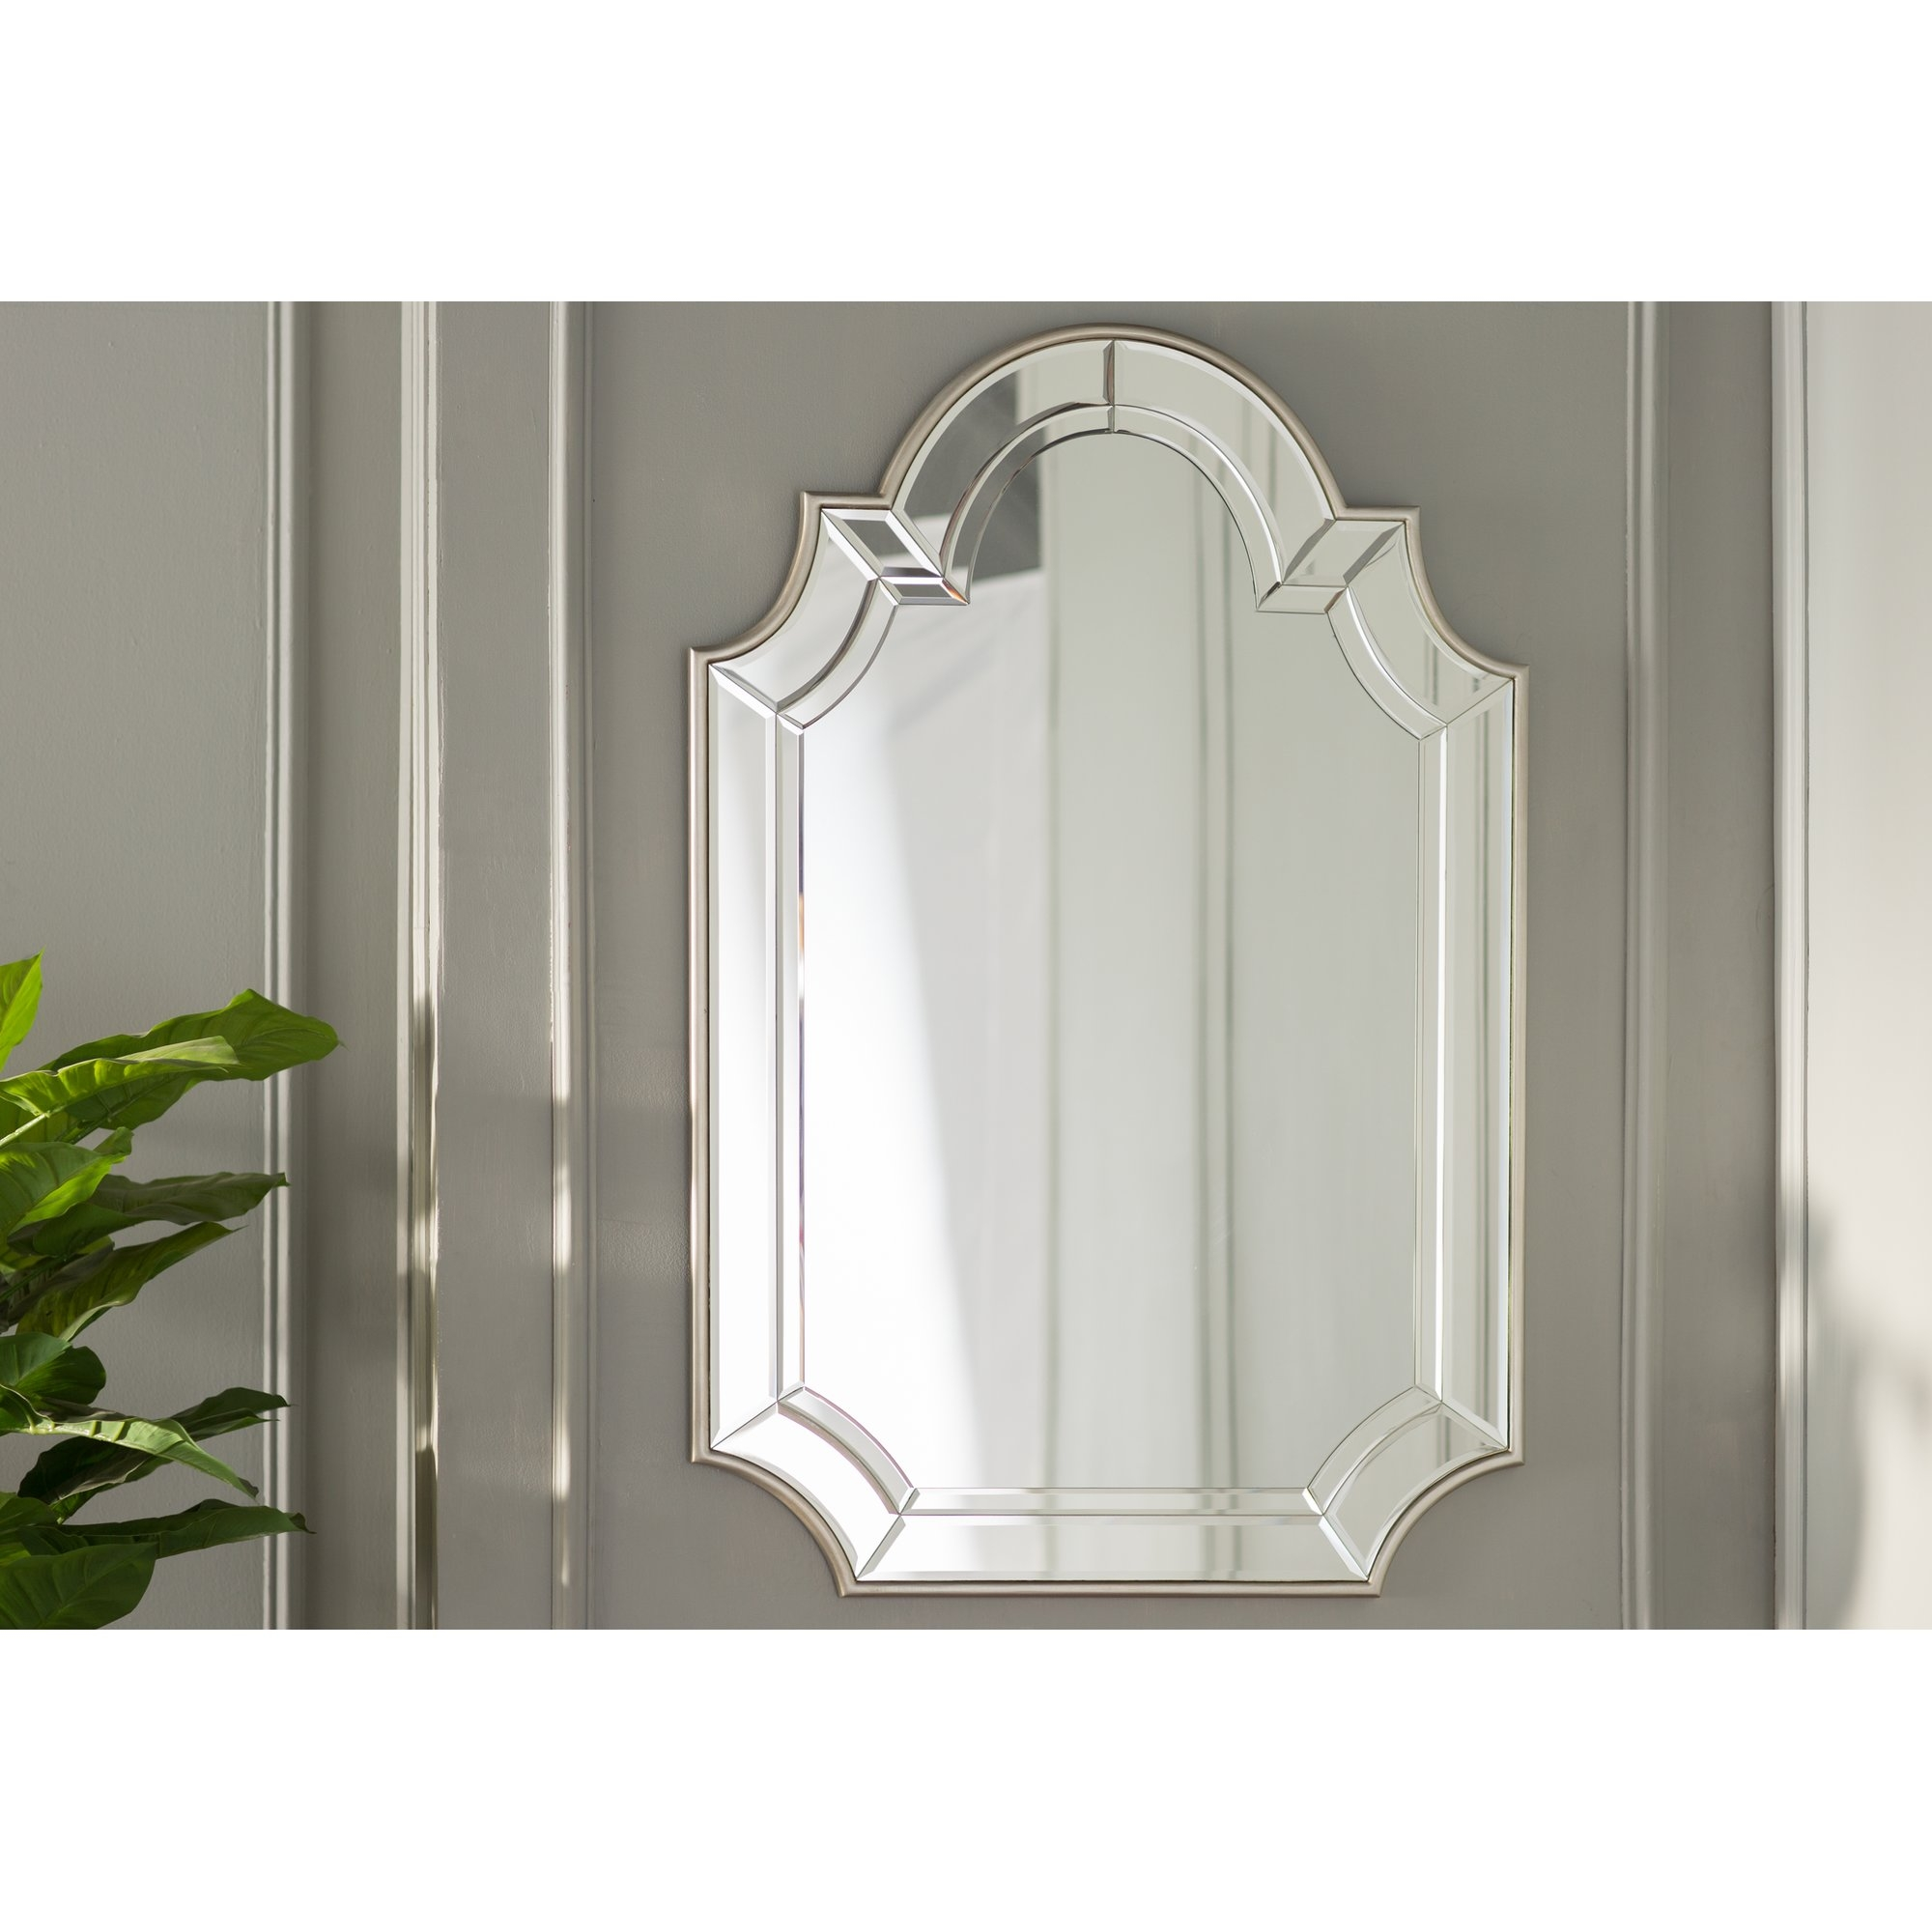 House Of Hampton Archcrowned Top Champagne Wall Mirror Reviews Inside Champagne Wall Mirror (View 8 of 15)